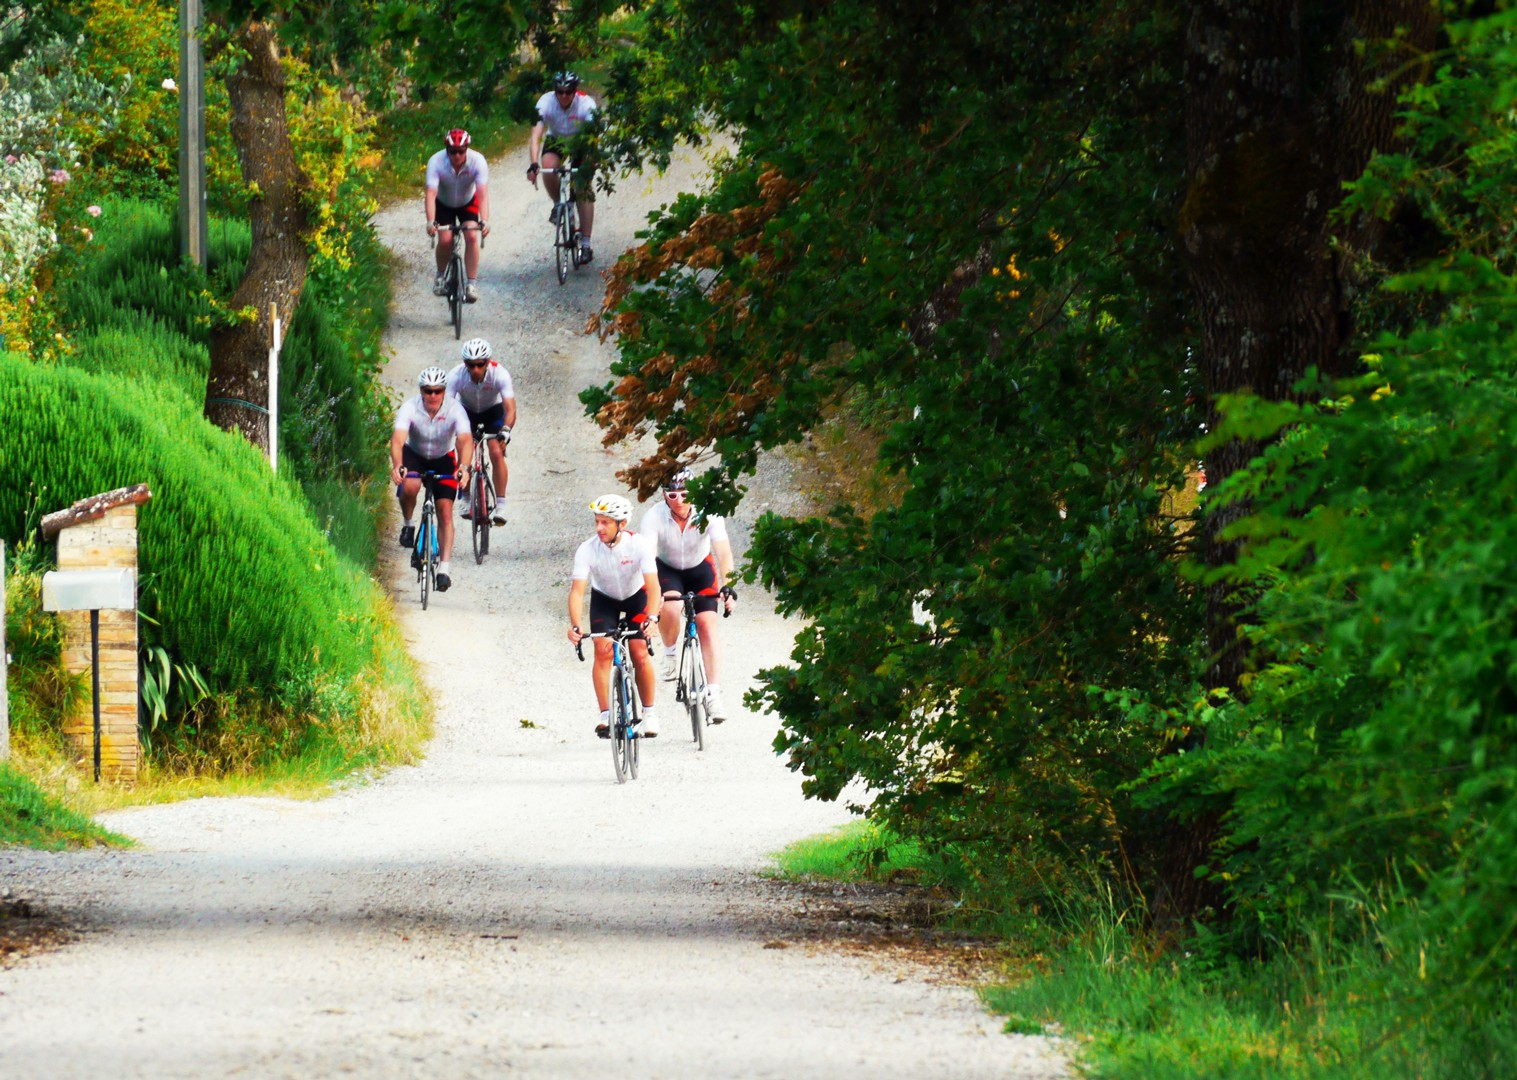 group-guided-cycling-white-roads-italy-tuscany.jpg - Italy - Tuscany Tourer - Road Cycling